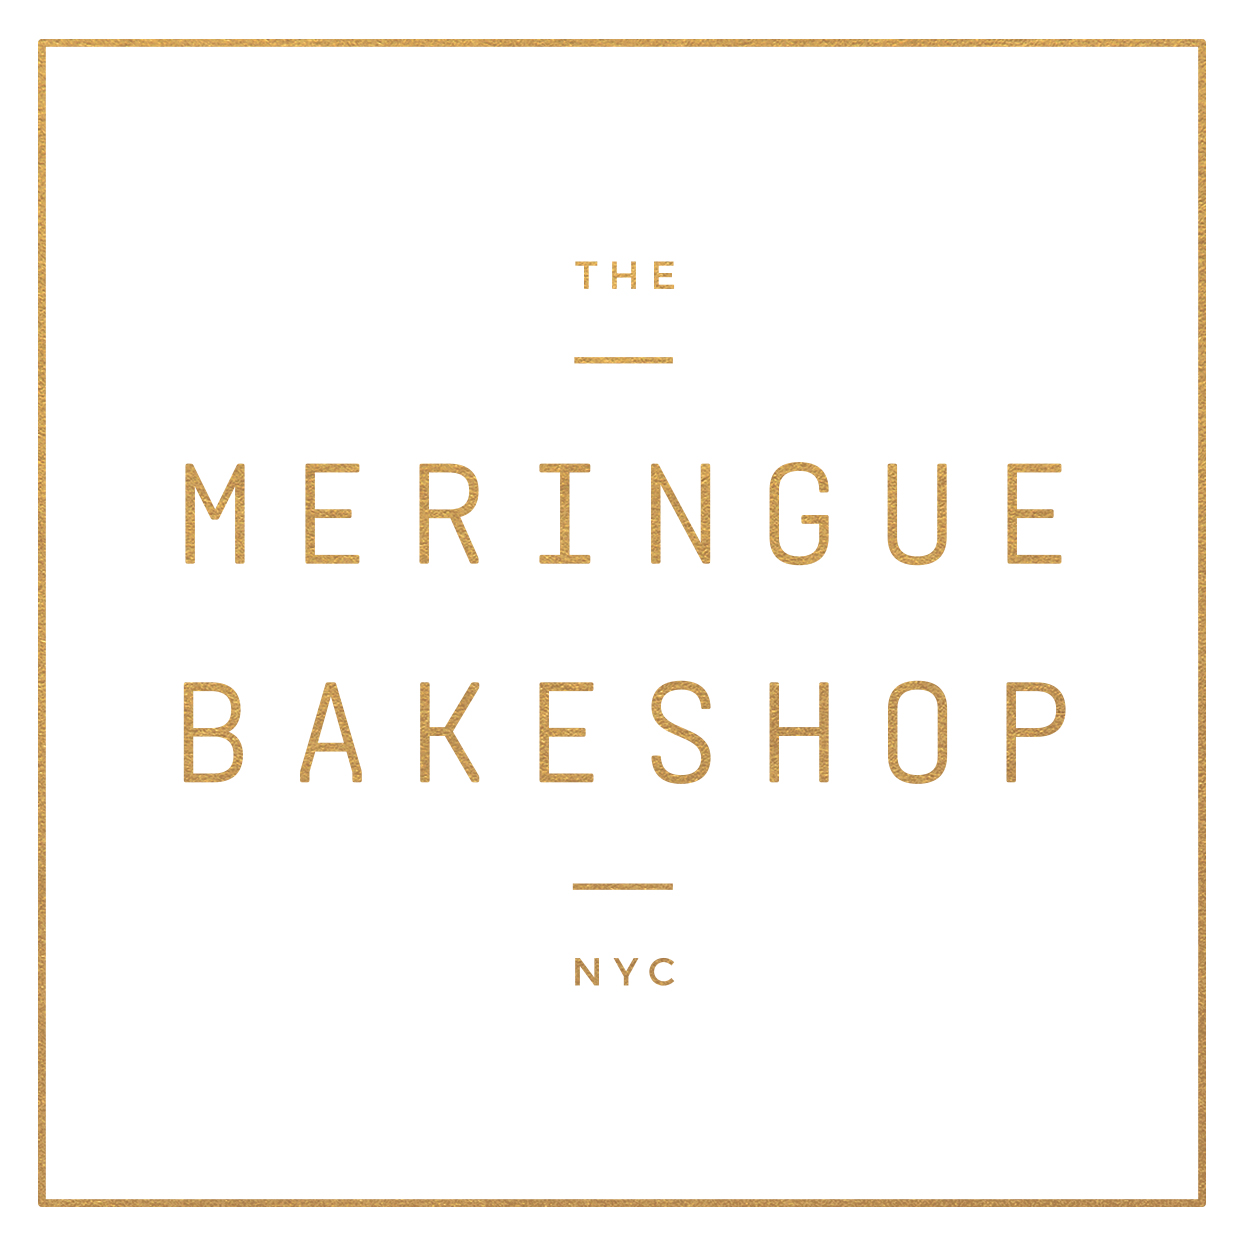 The Meringue Bakeshop Nyc